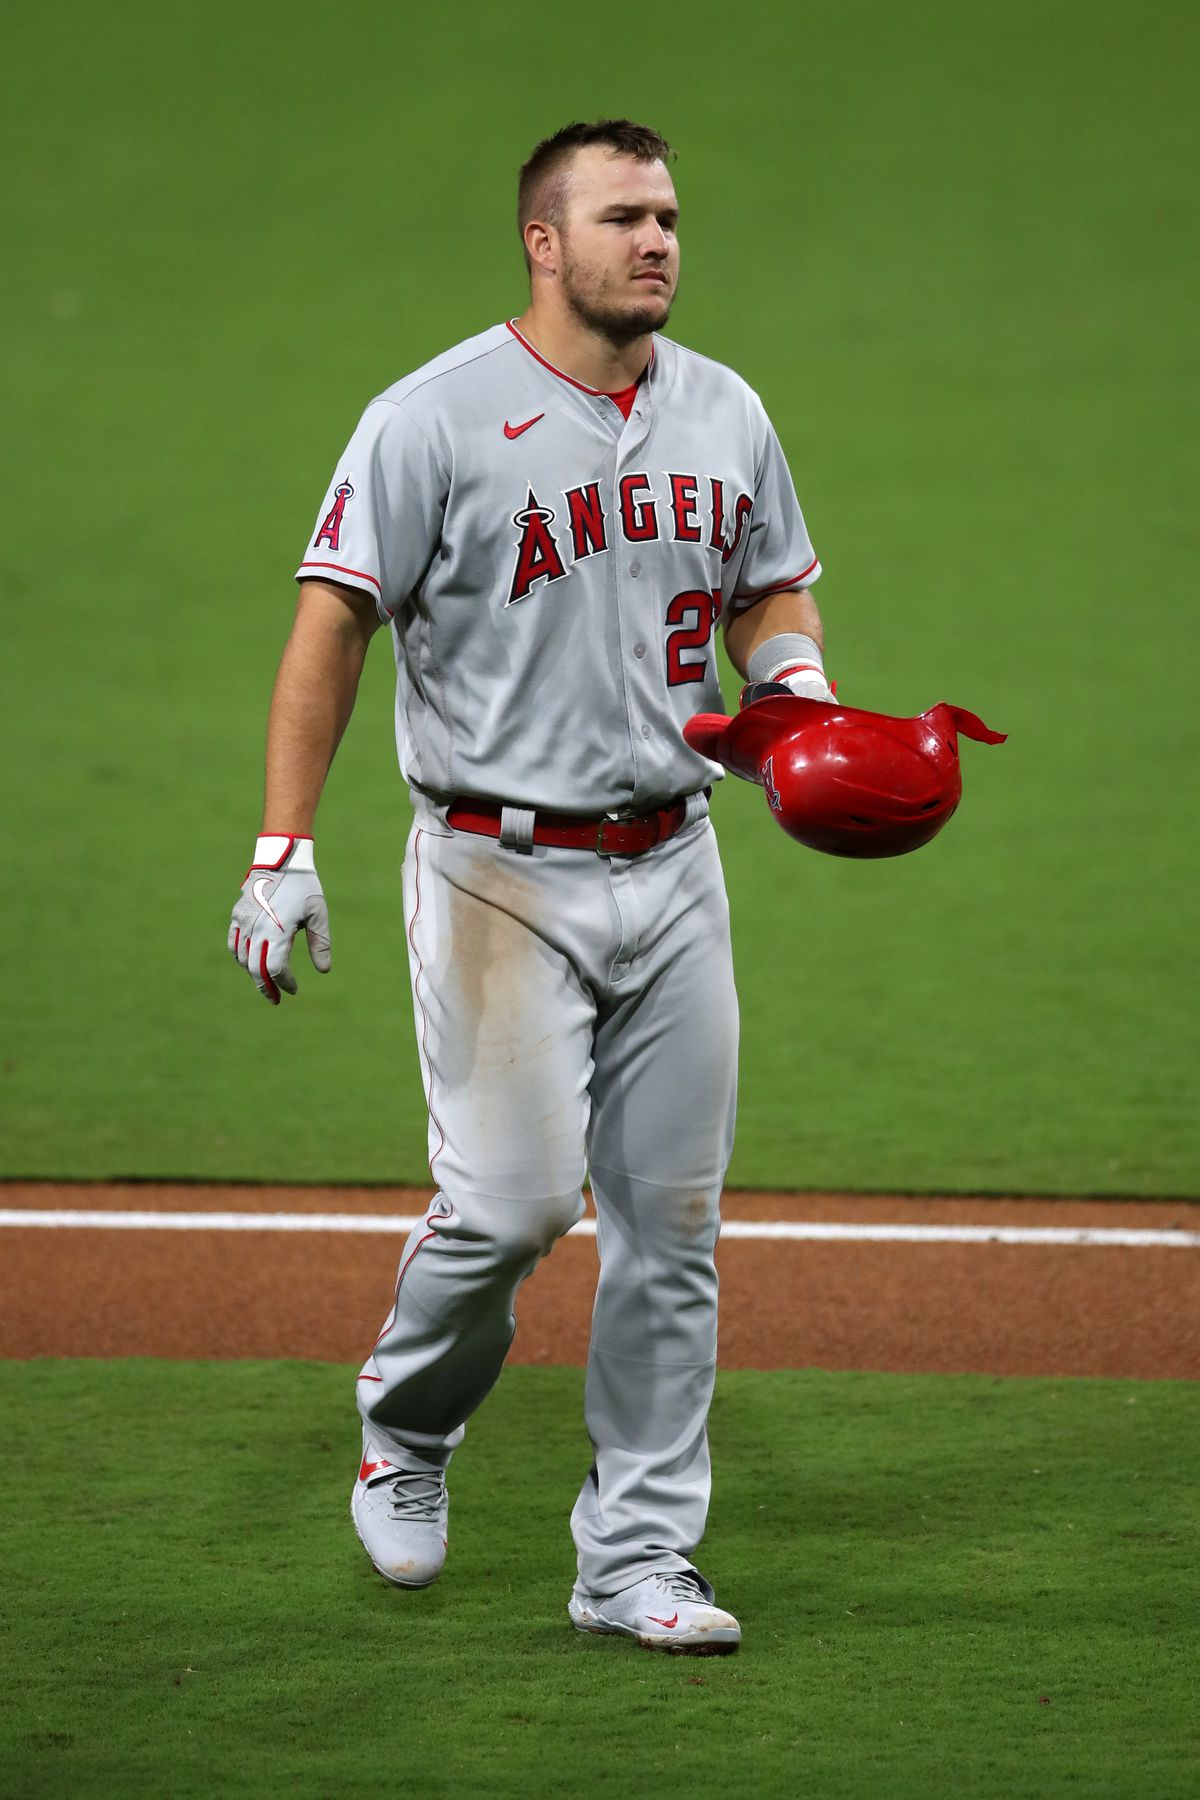 Mike Trout of the Angels.